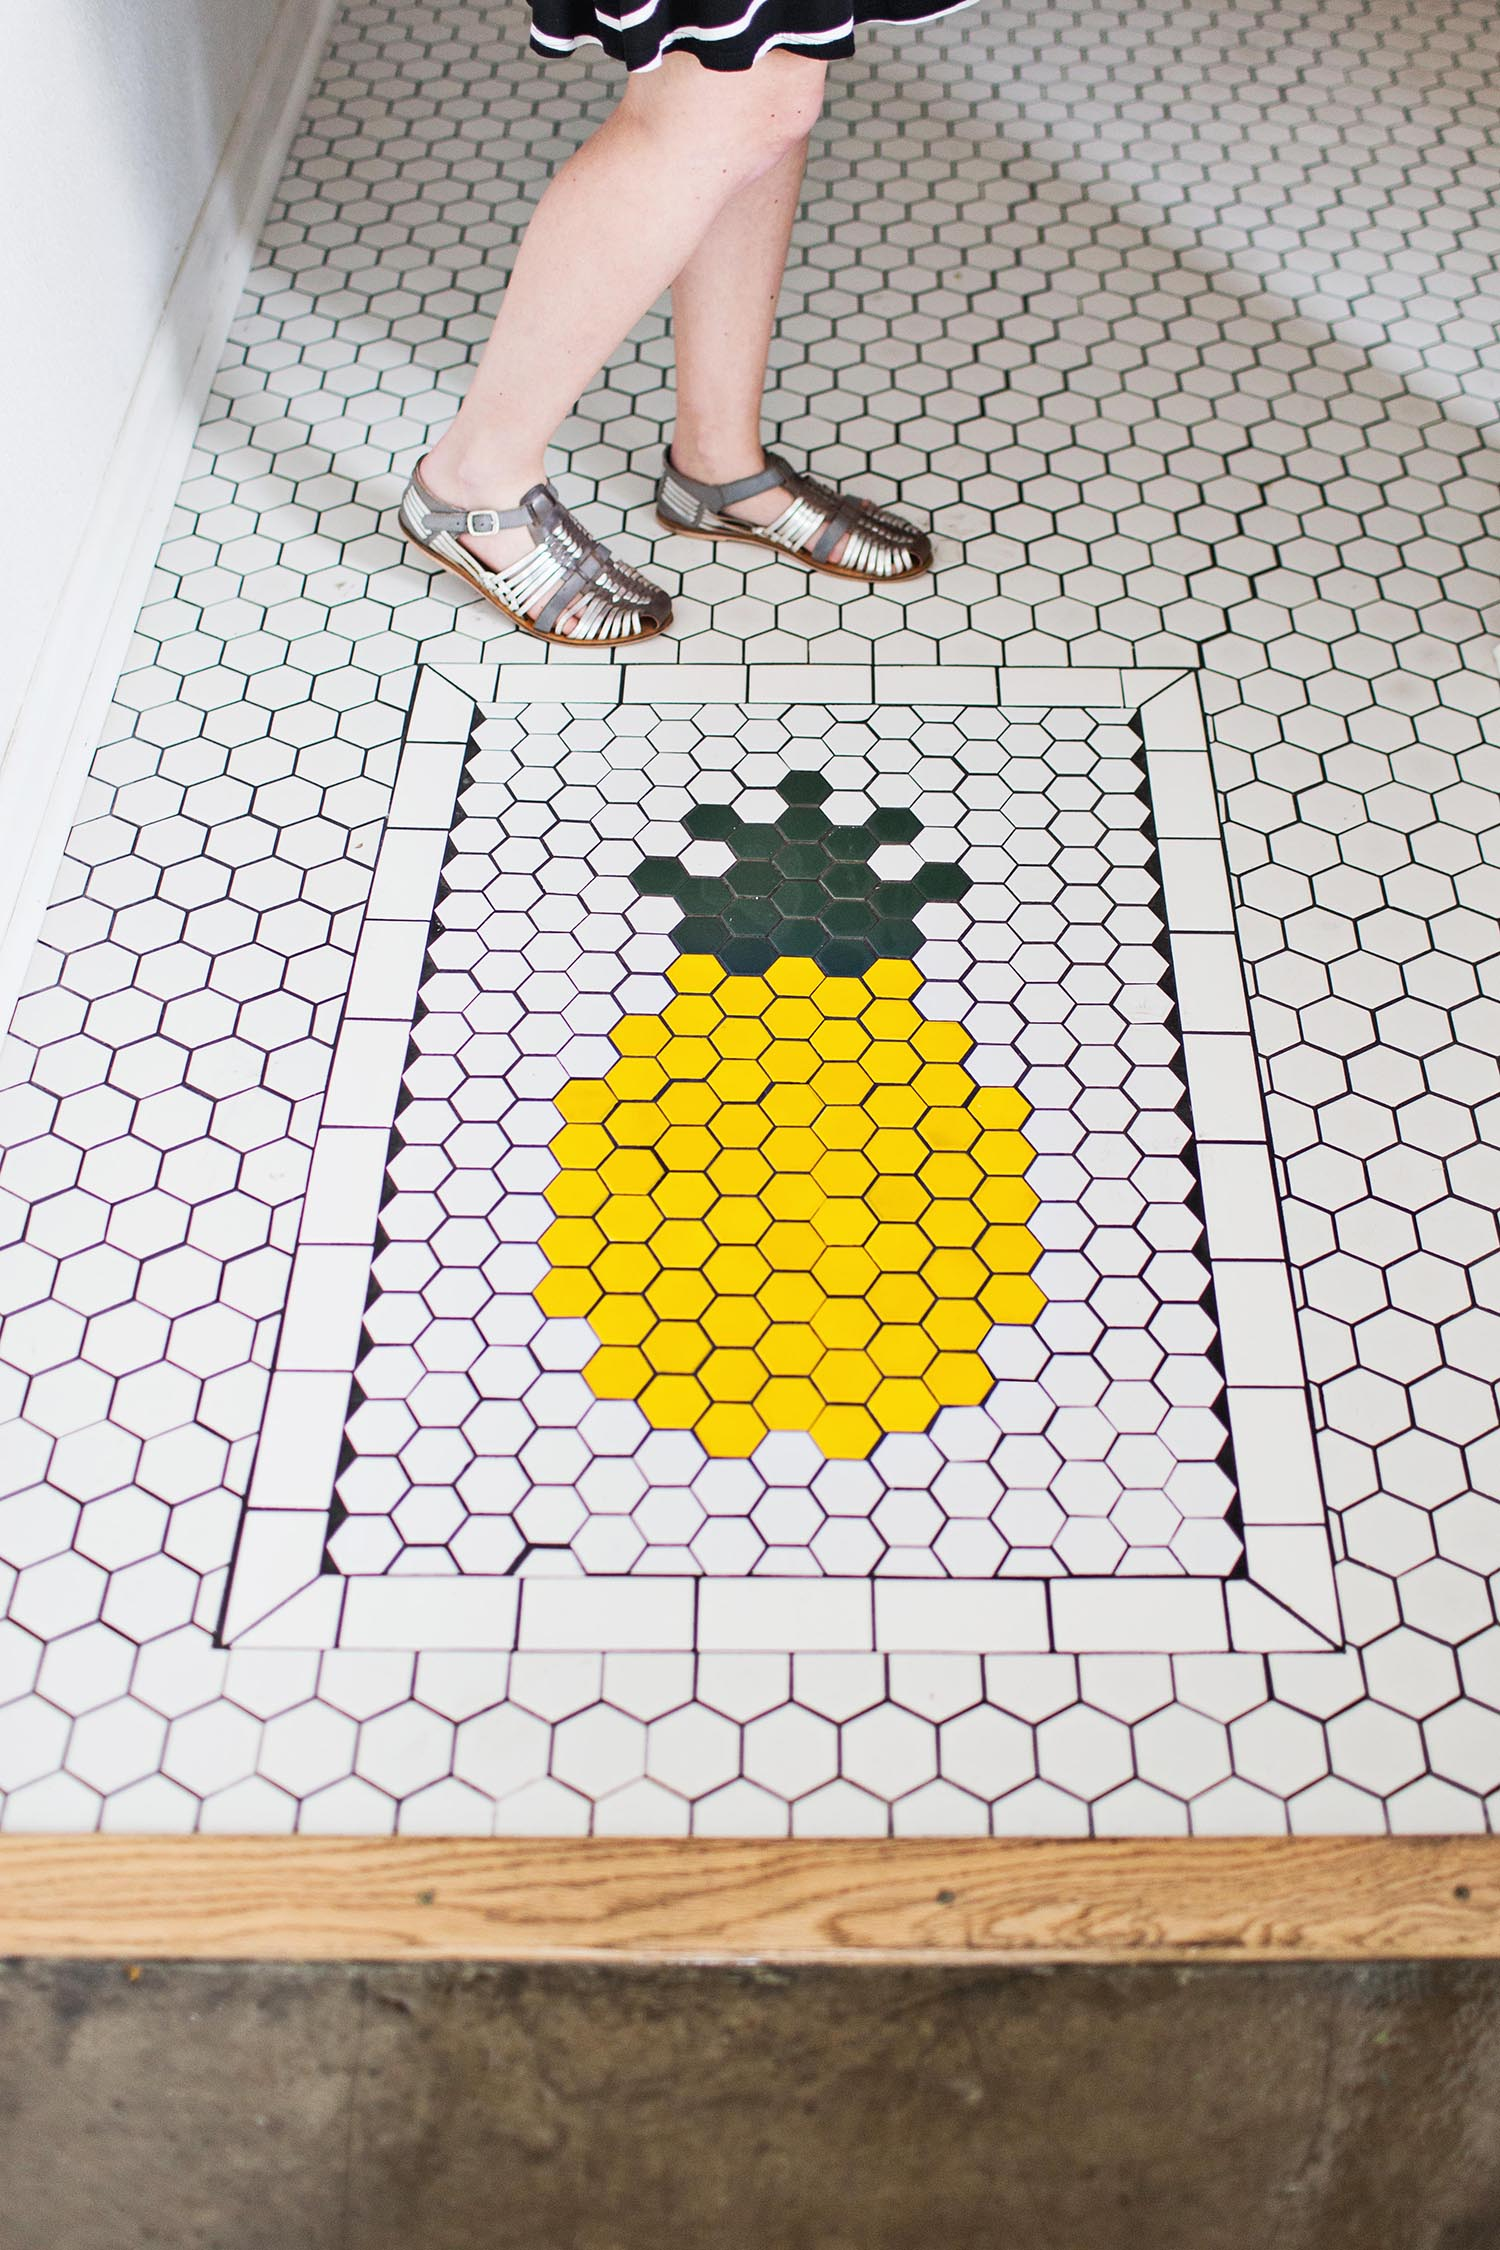 The Golden Girl Rum Club pineapple tile